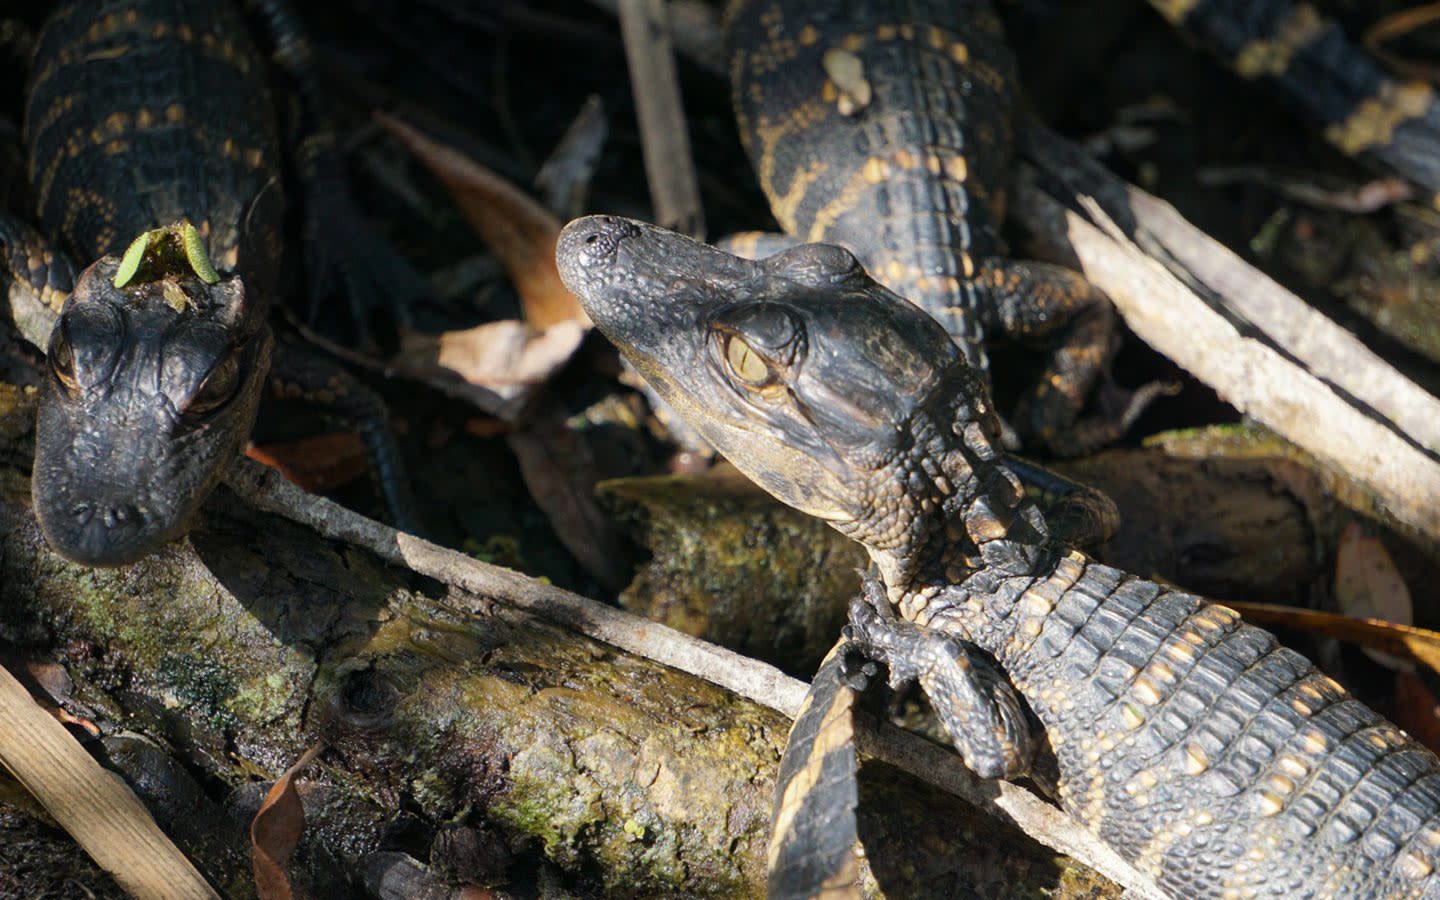 Baby alligators at Everglades National Park